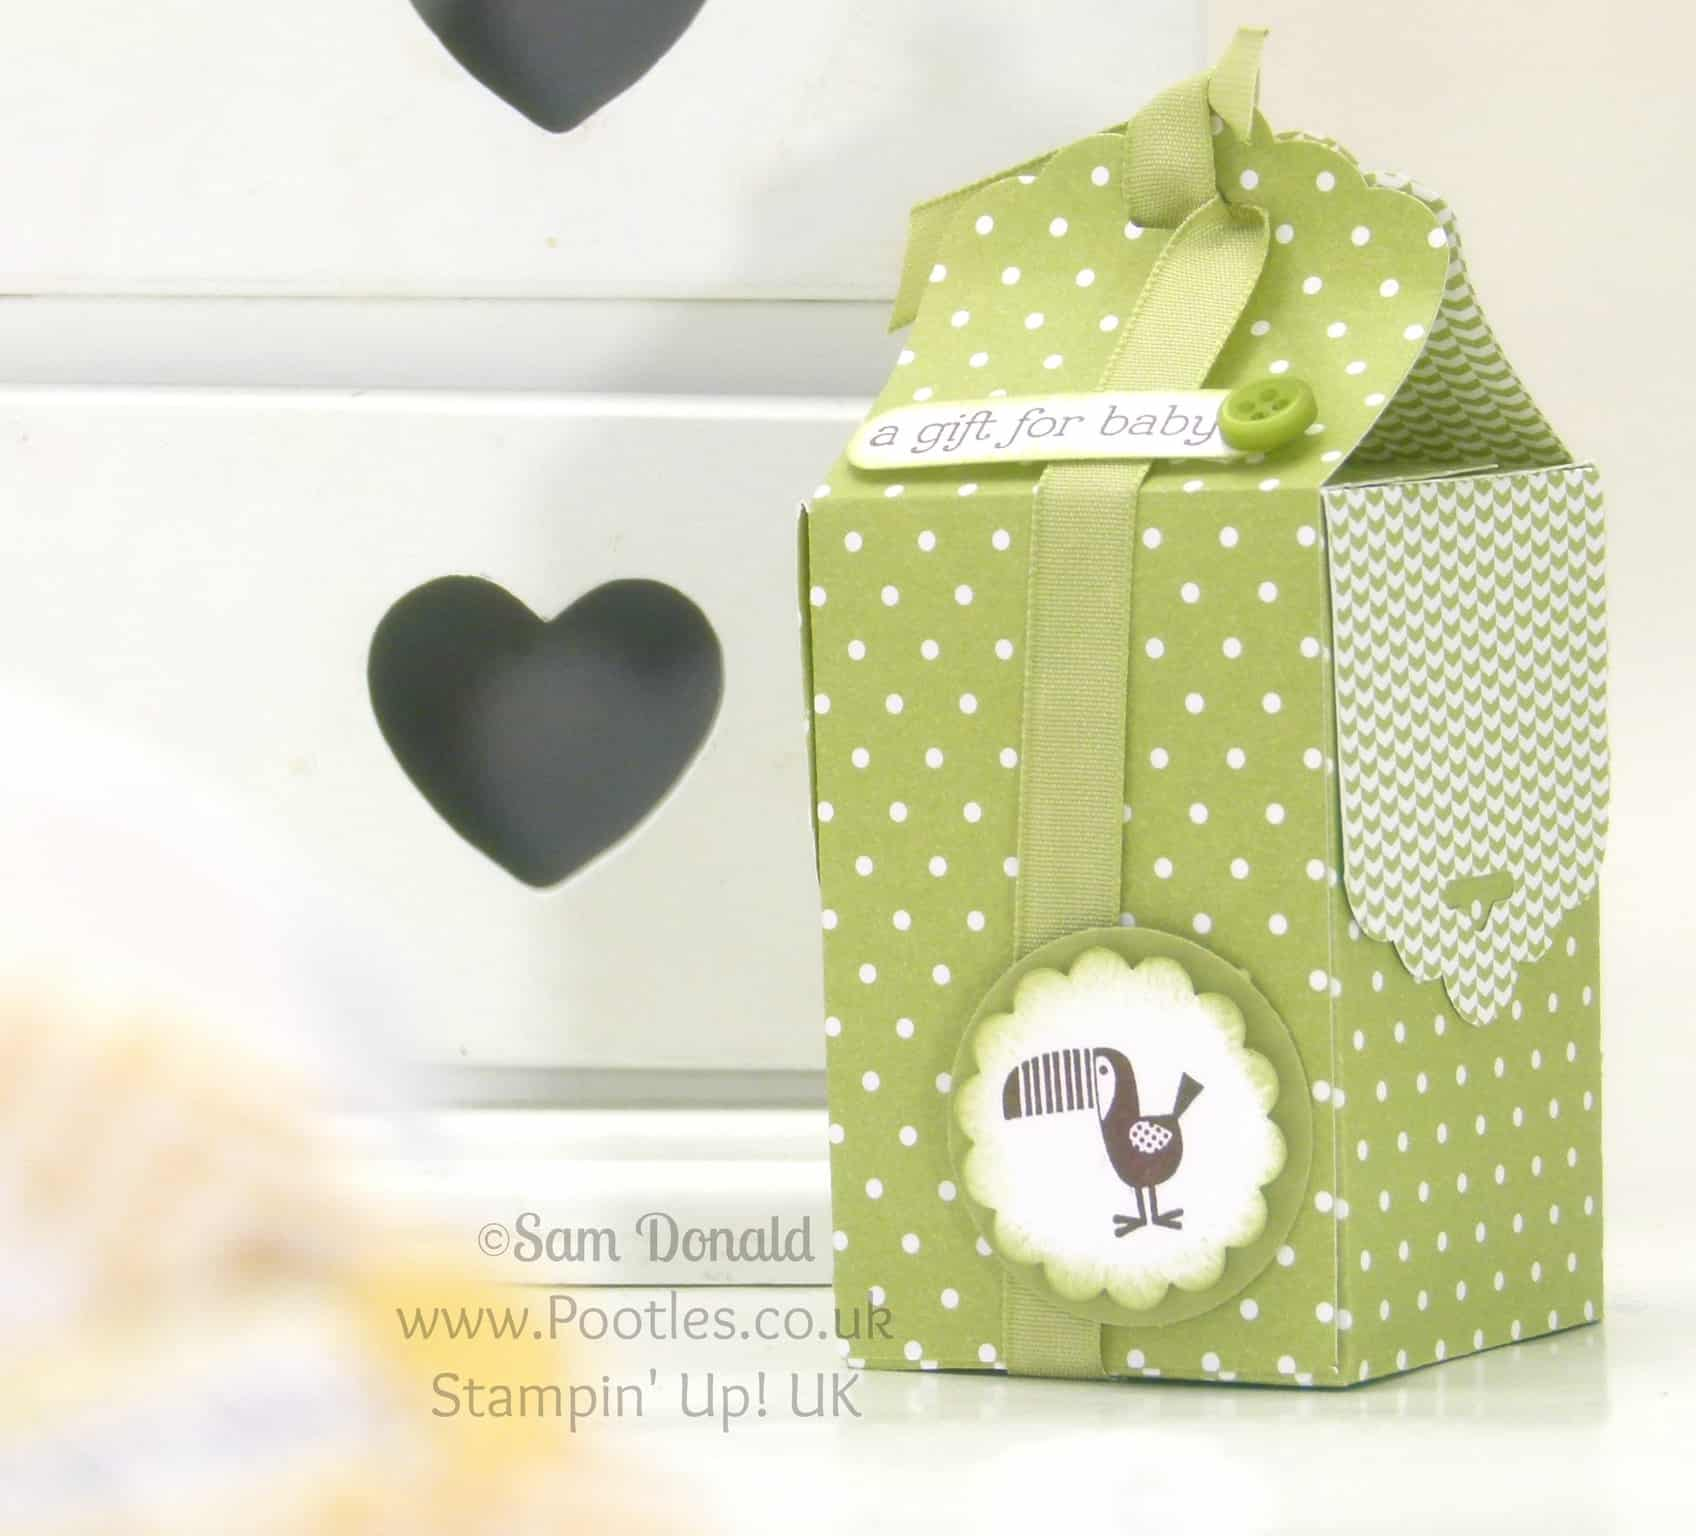 POOTLES Stampin' Up! UK Tag Topper Baby Bag Tutorial Pear Pizzazz